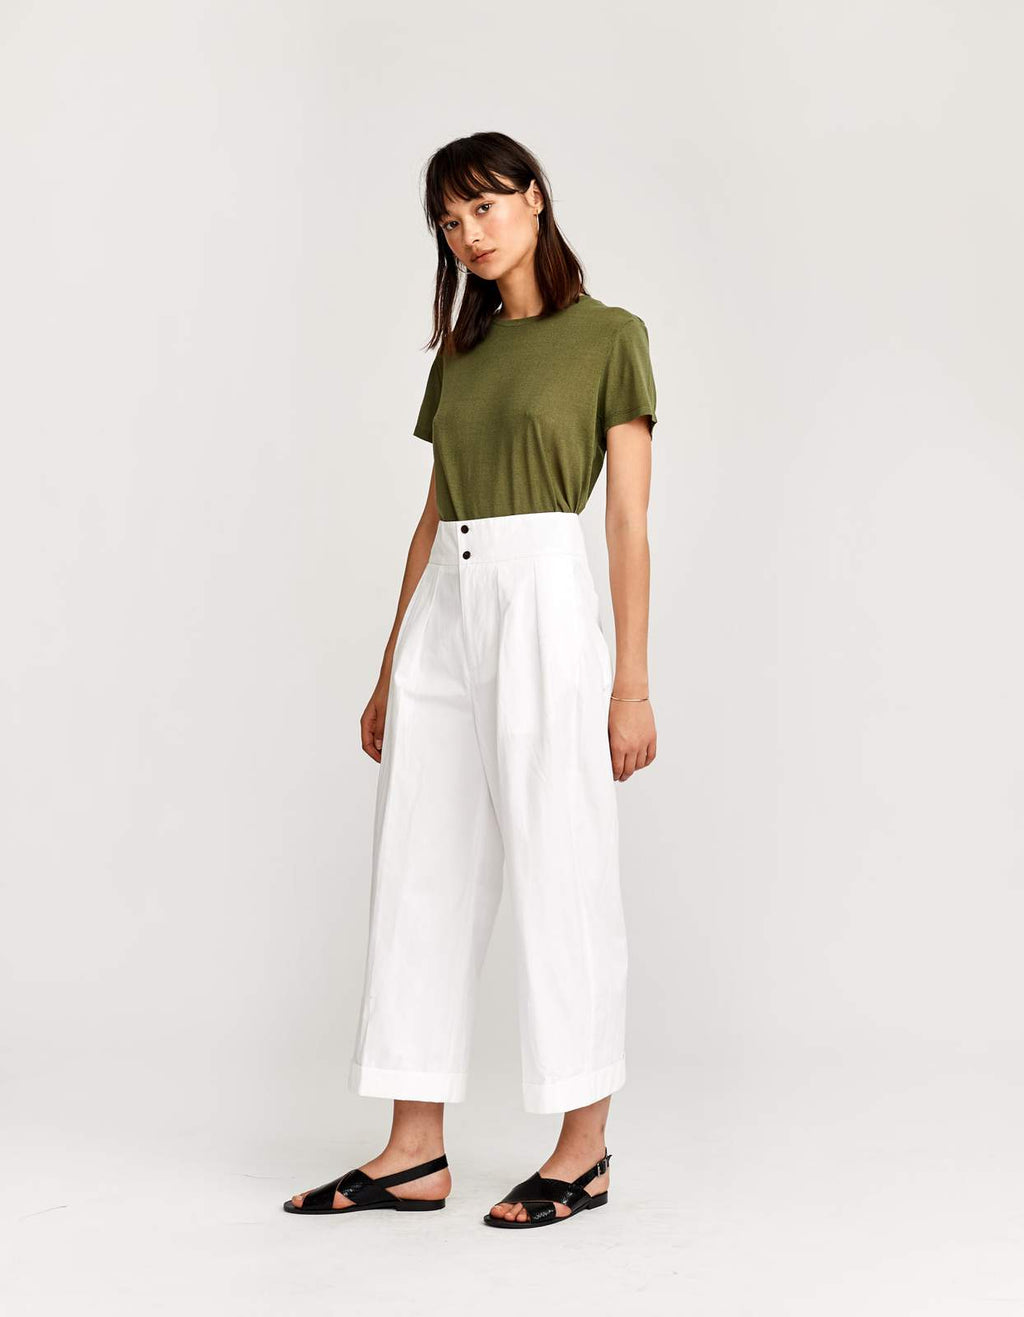 bellerose vincent white cotton flared pants madress